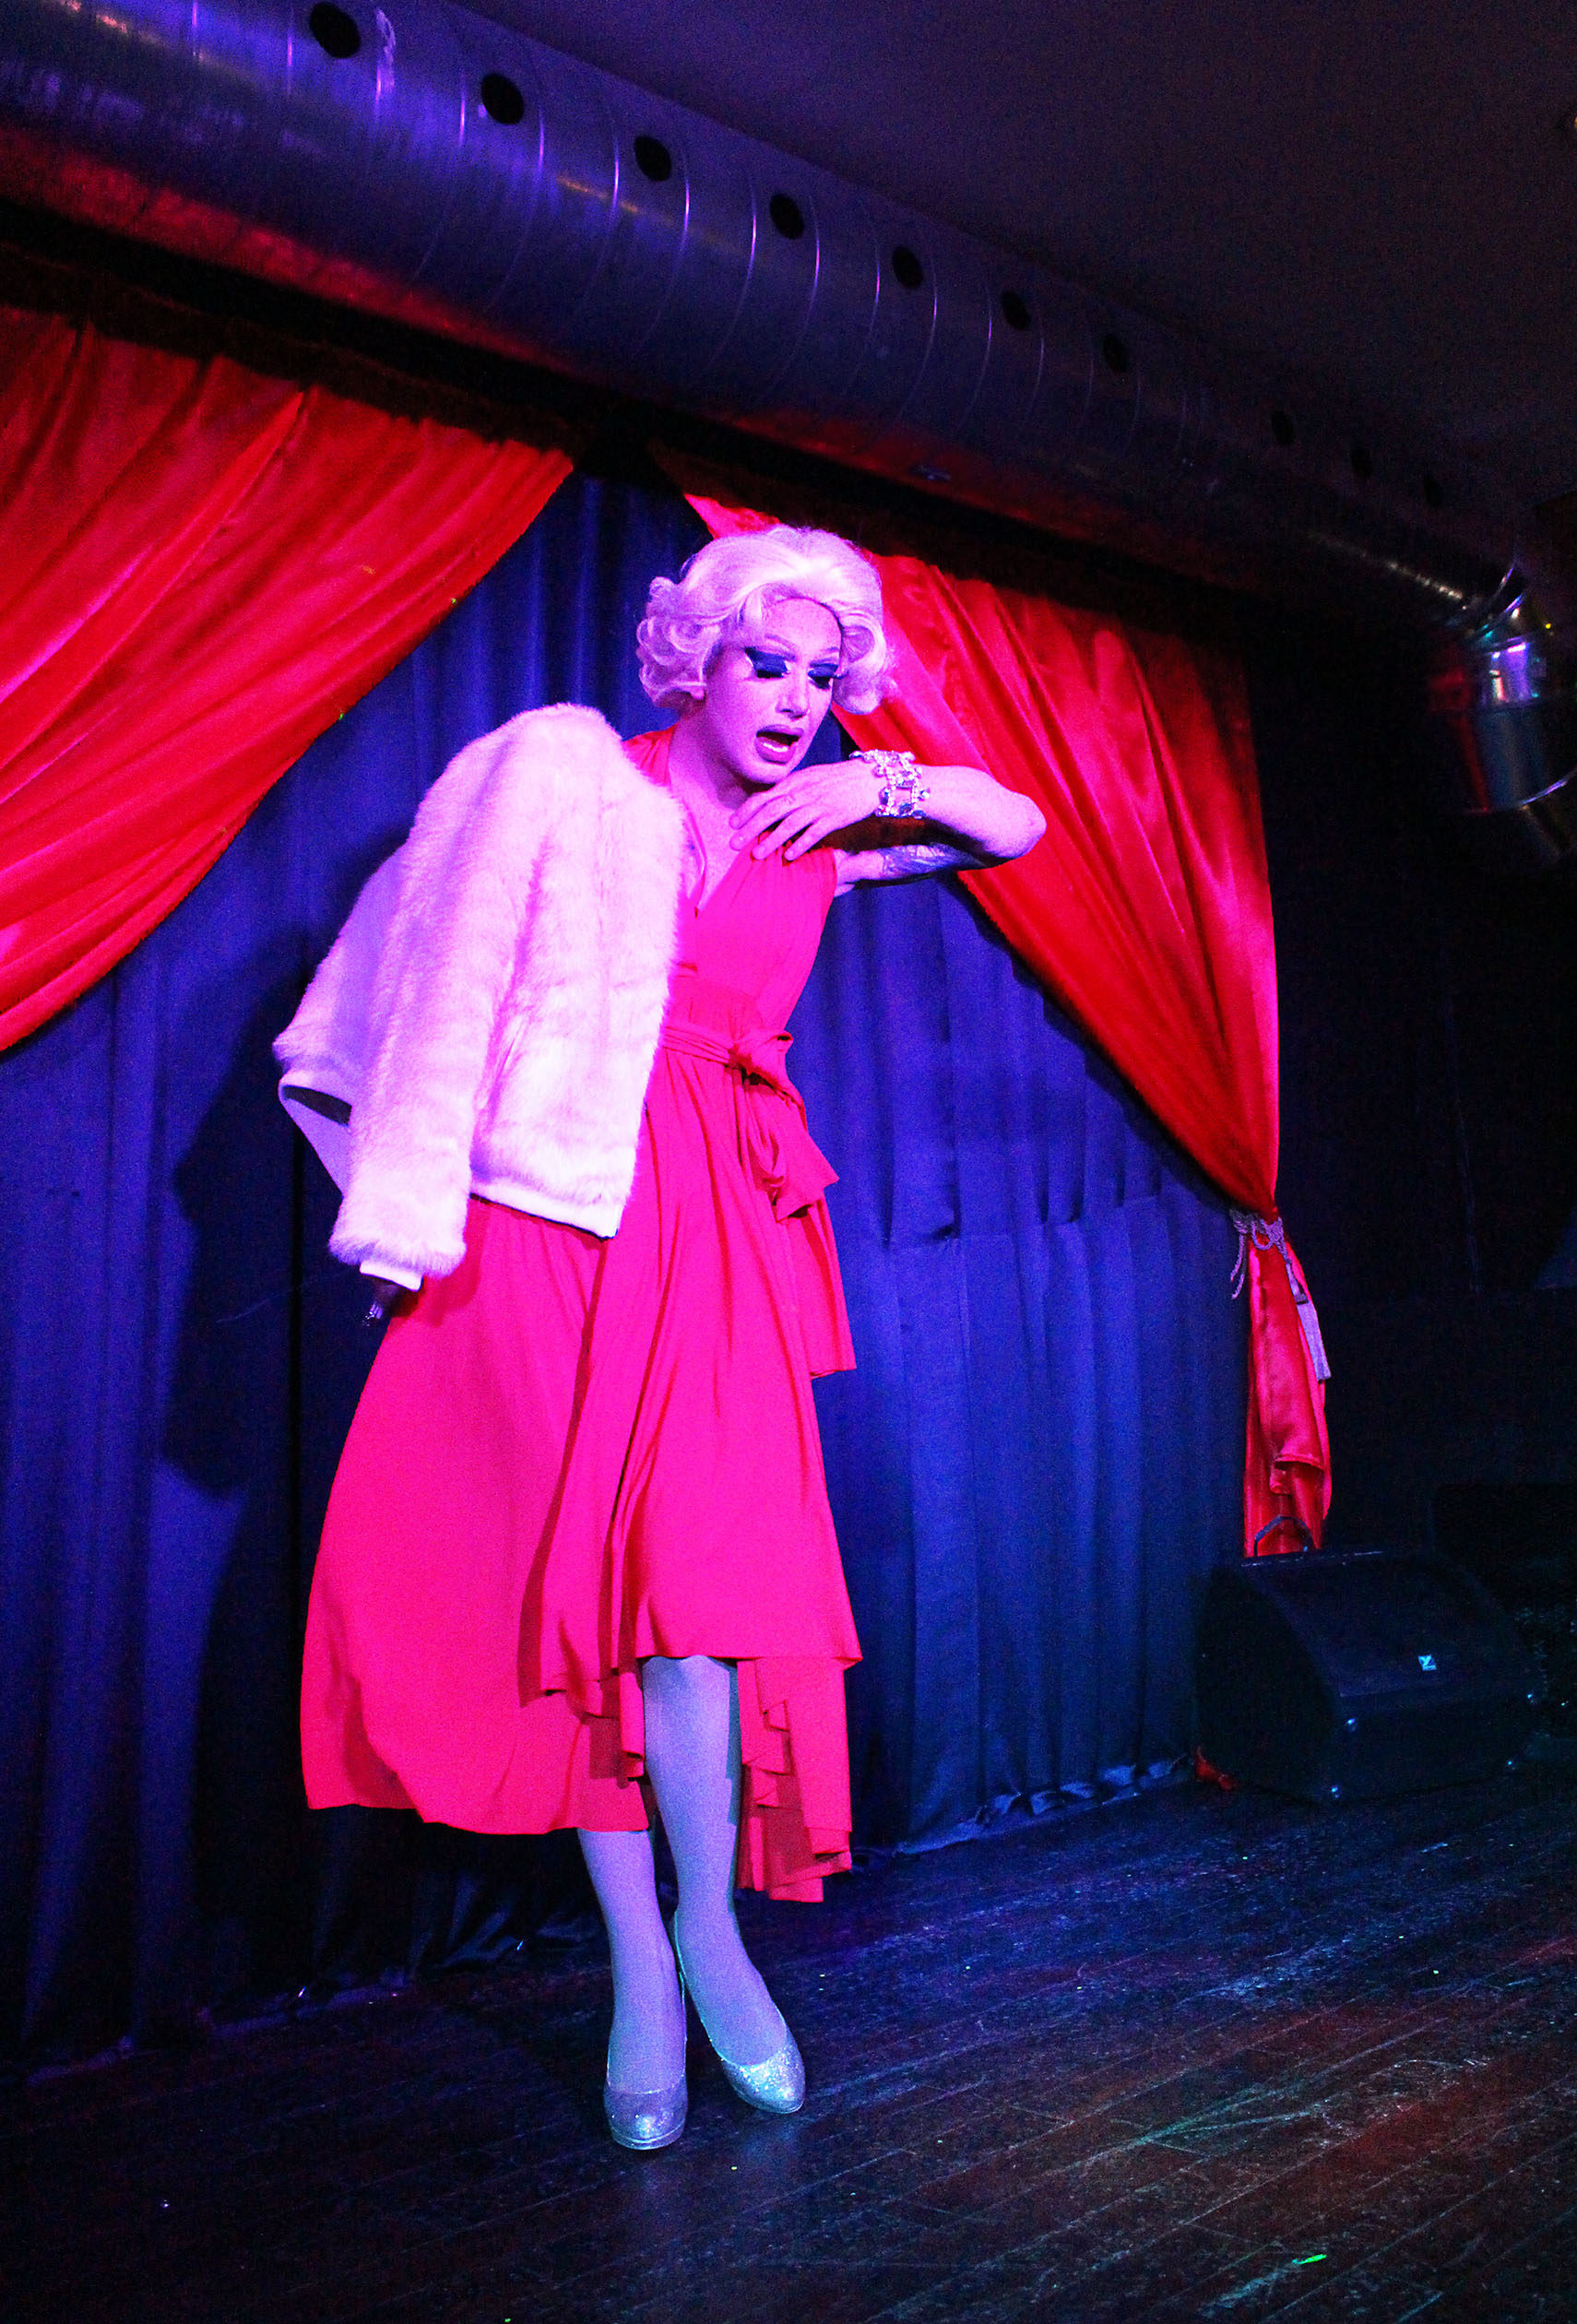 Scarlett Bobo on stage in a red outfit, holding a furry pink sweater, with red curtains in the background.